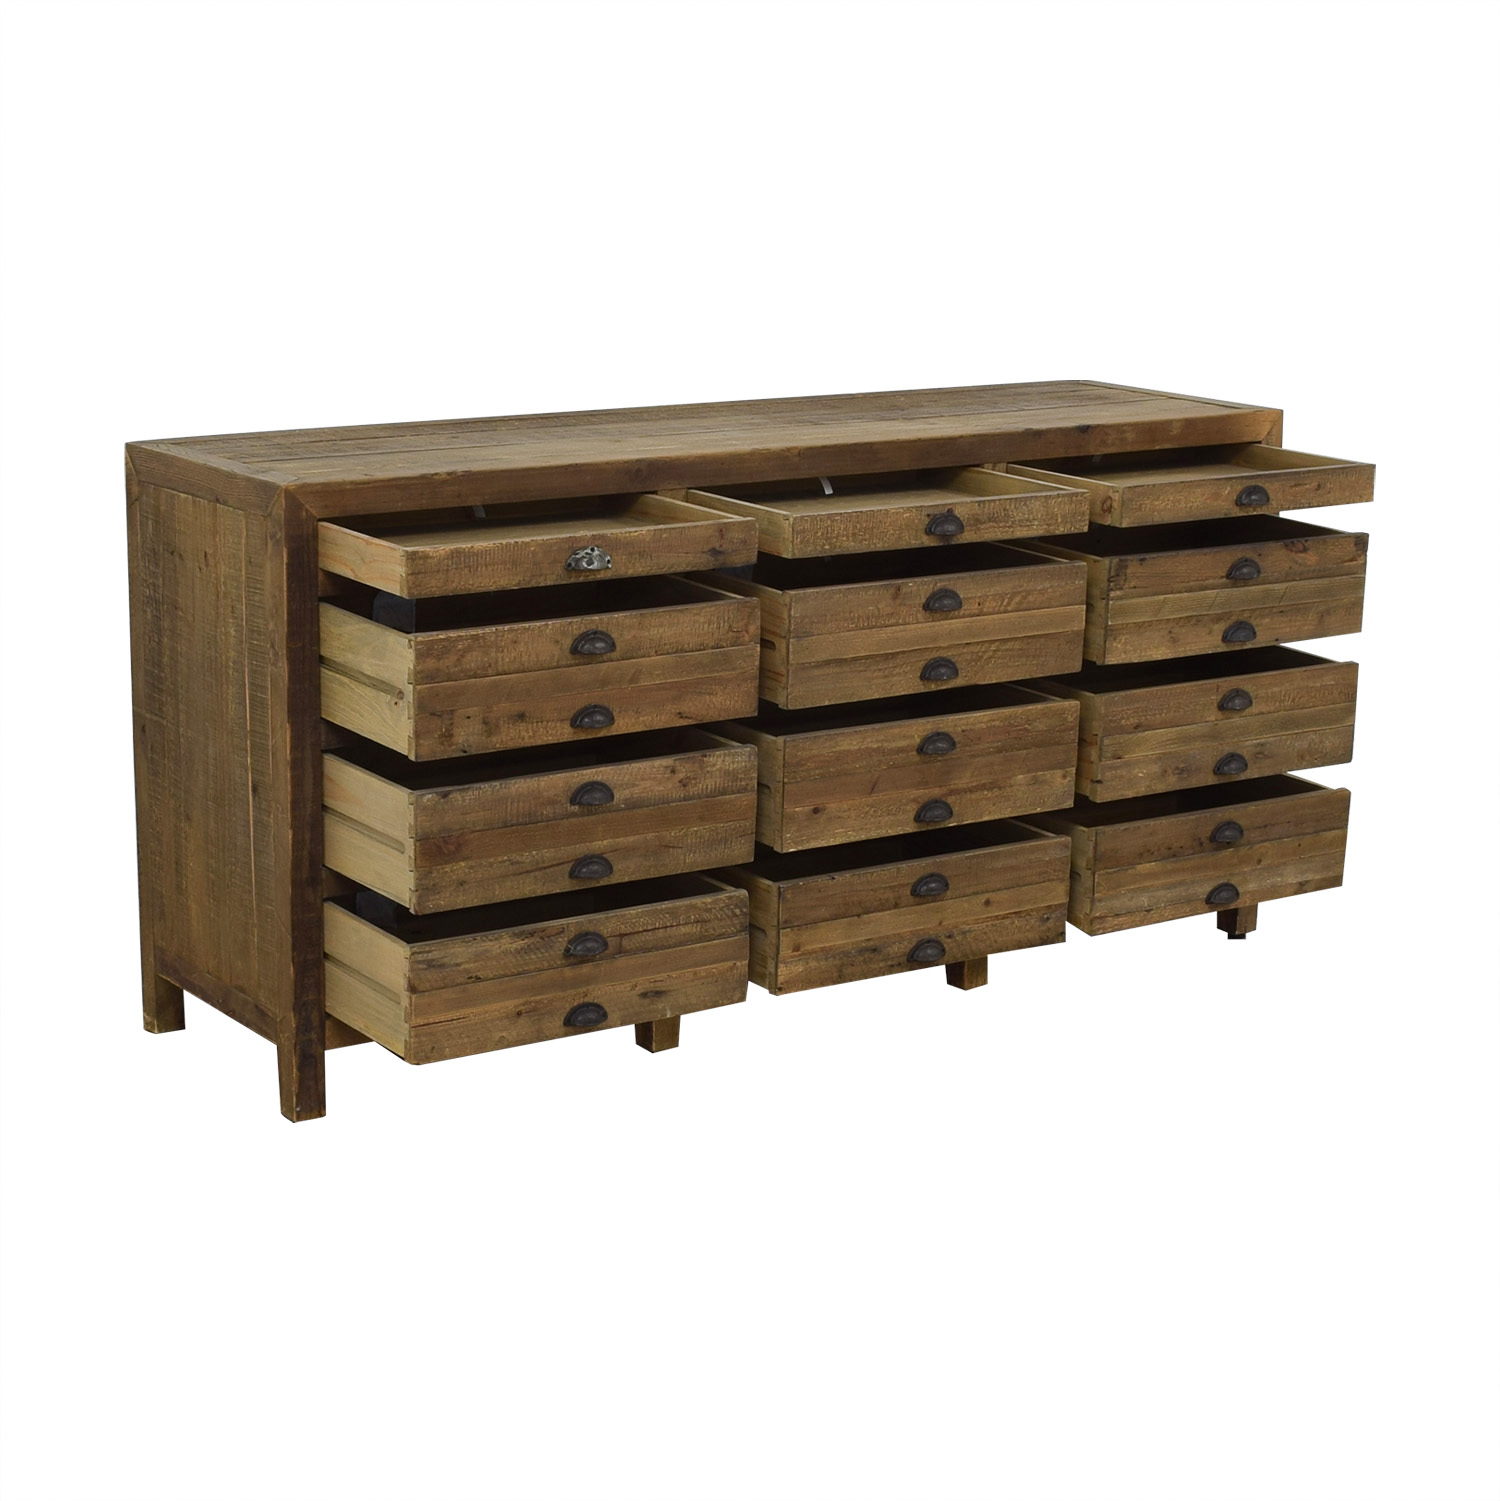 shop Restoration Hardware Printmaker's Sideboard Restoration Hardware